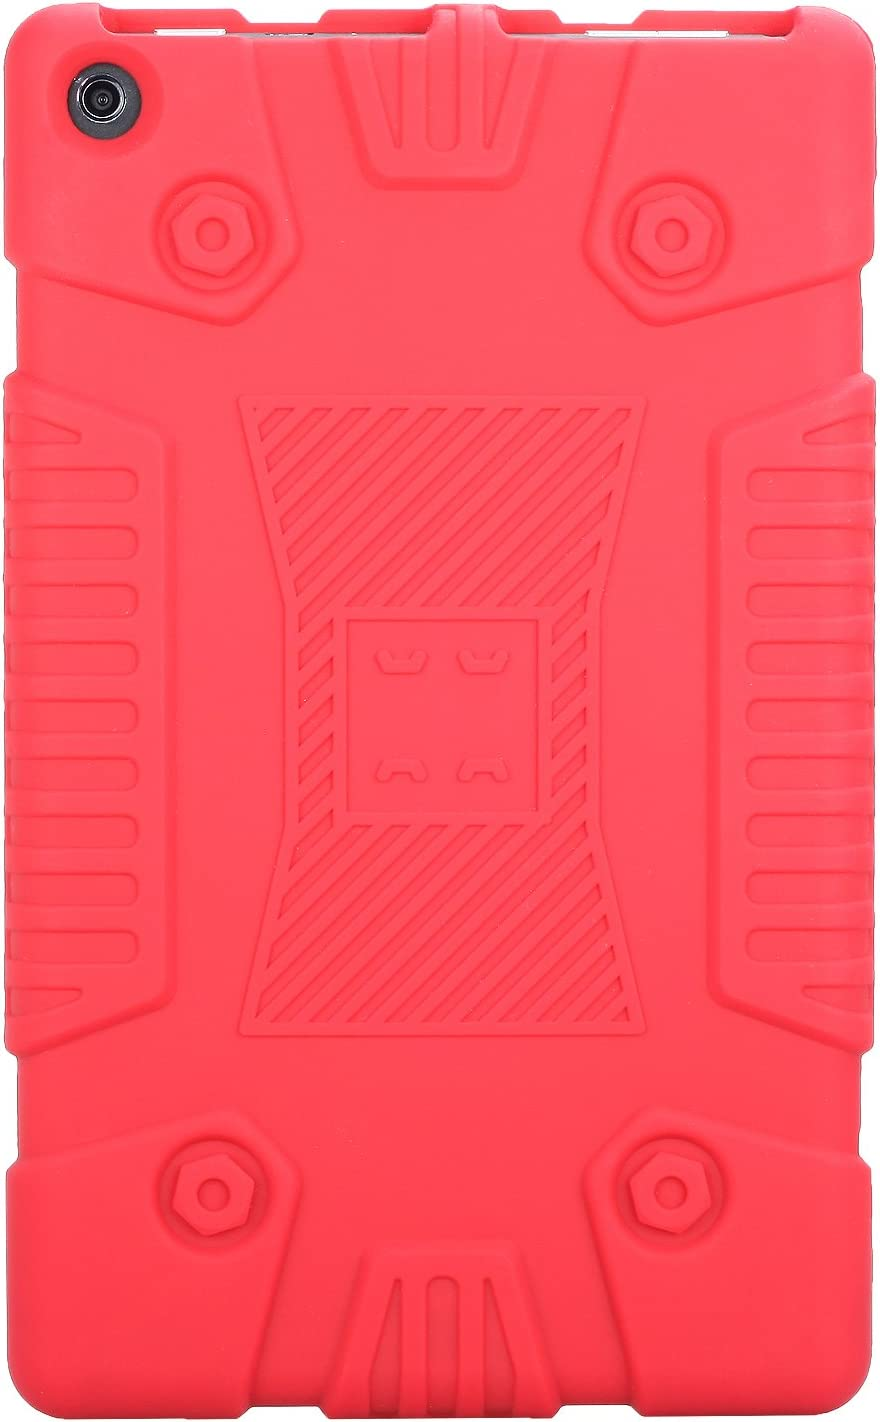 Heavy Duty Soft Kid Proof Case Full Body Protection Cover Silicone Lightweight Shell Waterproof for  Kindle Fire HD8 2017 All New Fire HD8 2017 Case navy blue